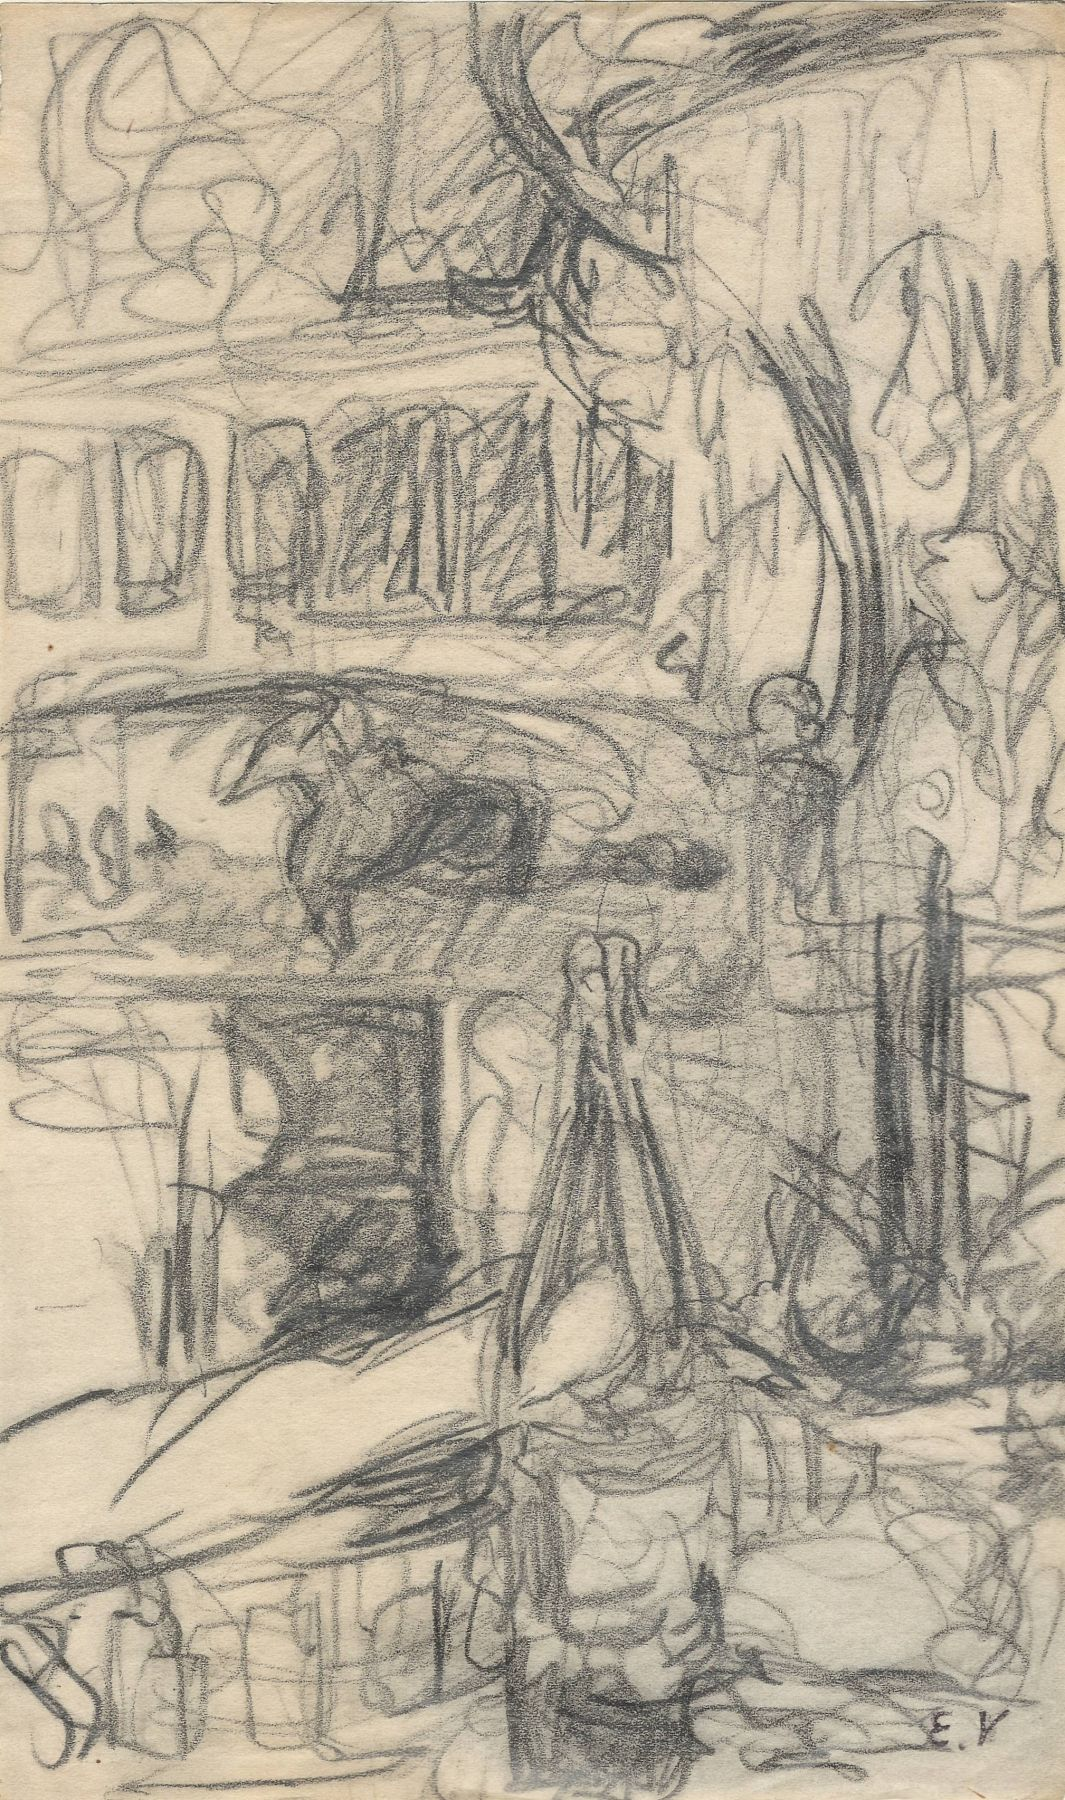 Edouard Vuillard, Wine Bottle in a Cabaret, Pencil on paper 8 1/2 x 5 3/16 inches